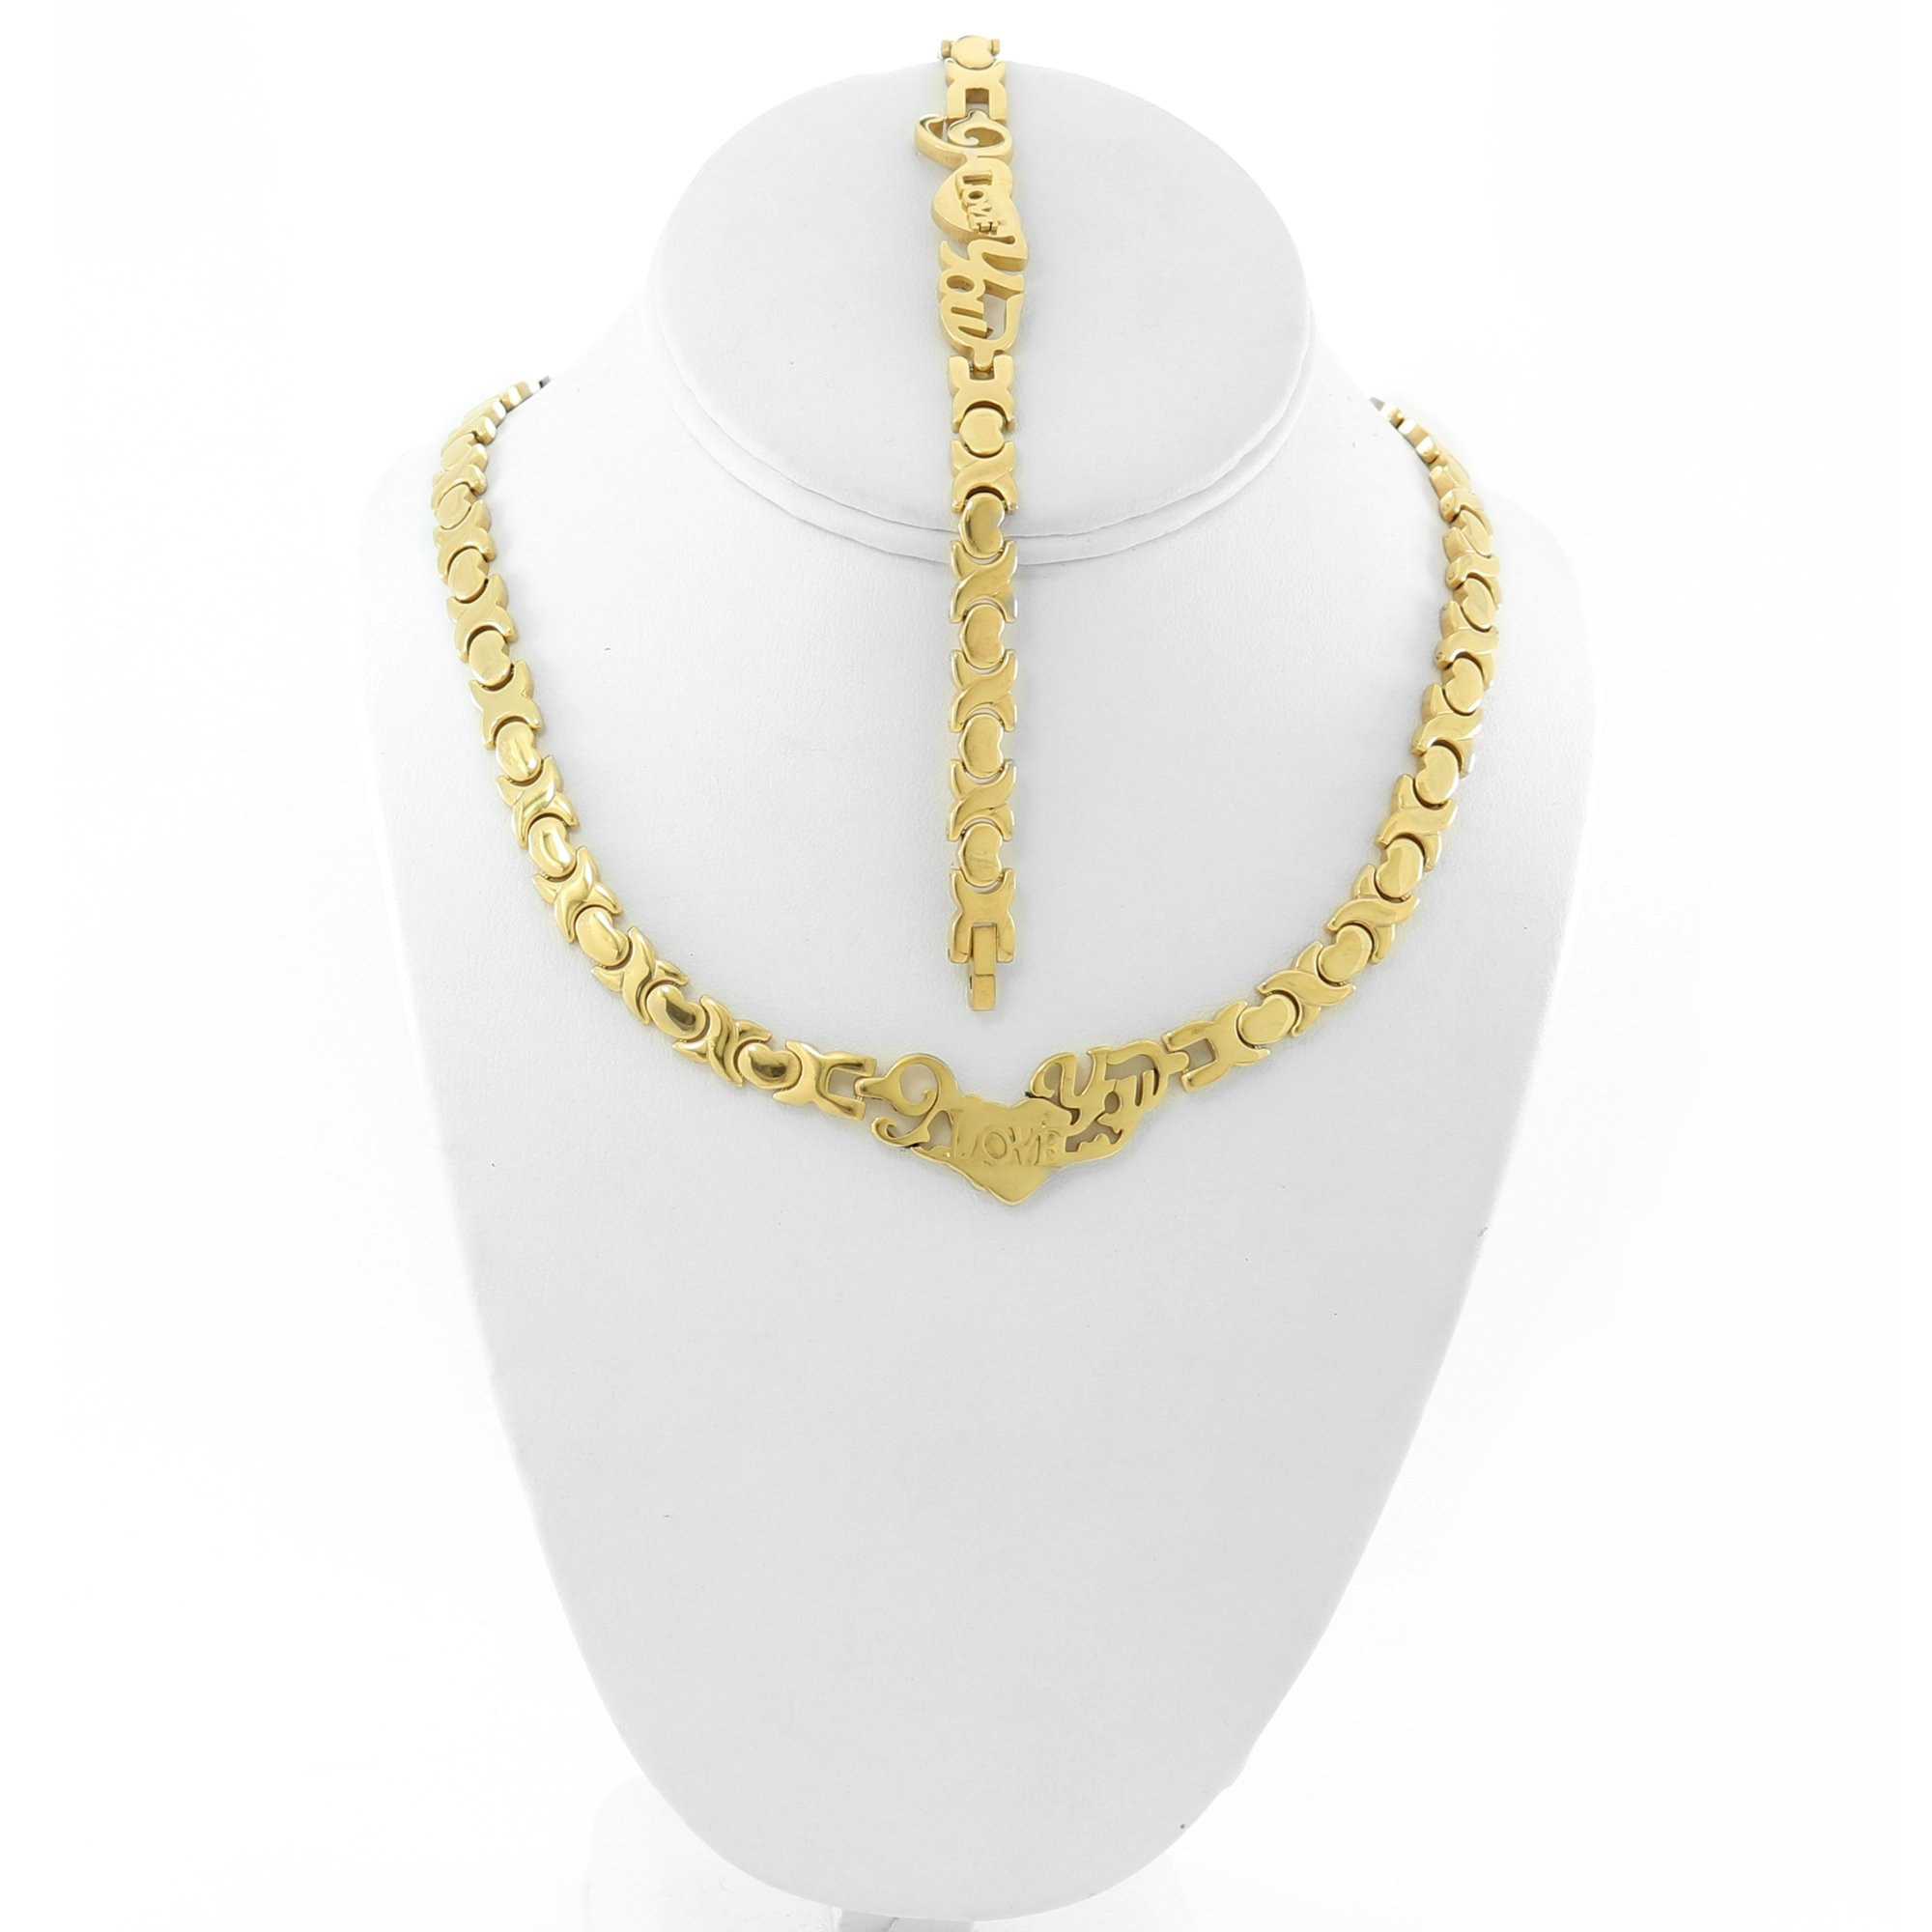 I LOVE YOU GOLD TONE HUGS AND KISSES NECKLACE AND BRACELET SET XOXO 18''